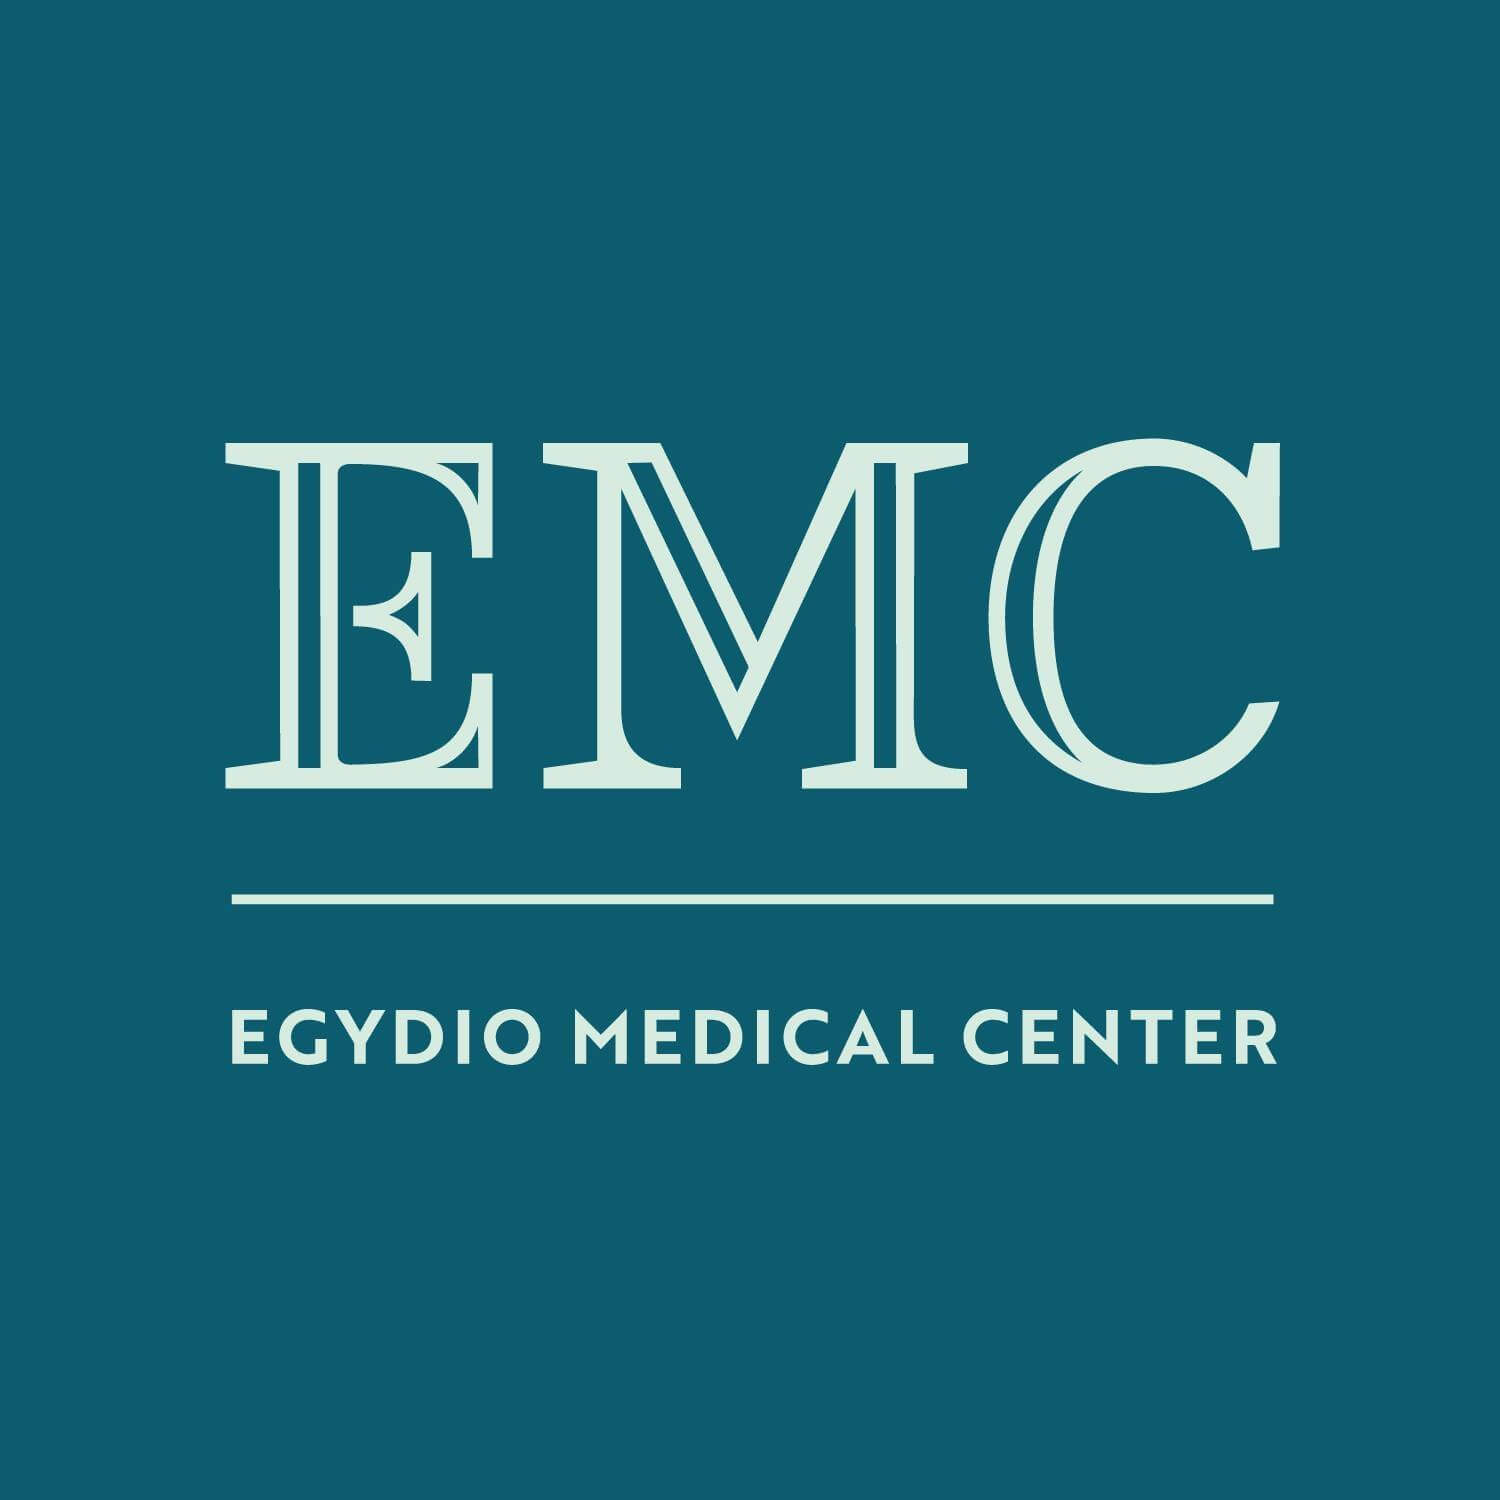 Egydio Medical Center logo